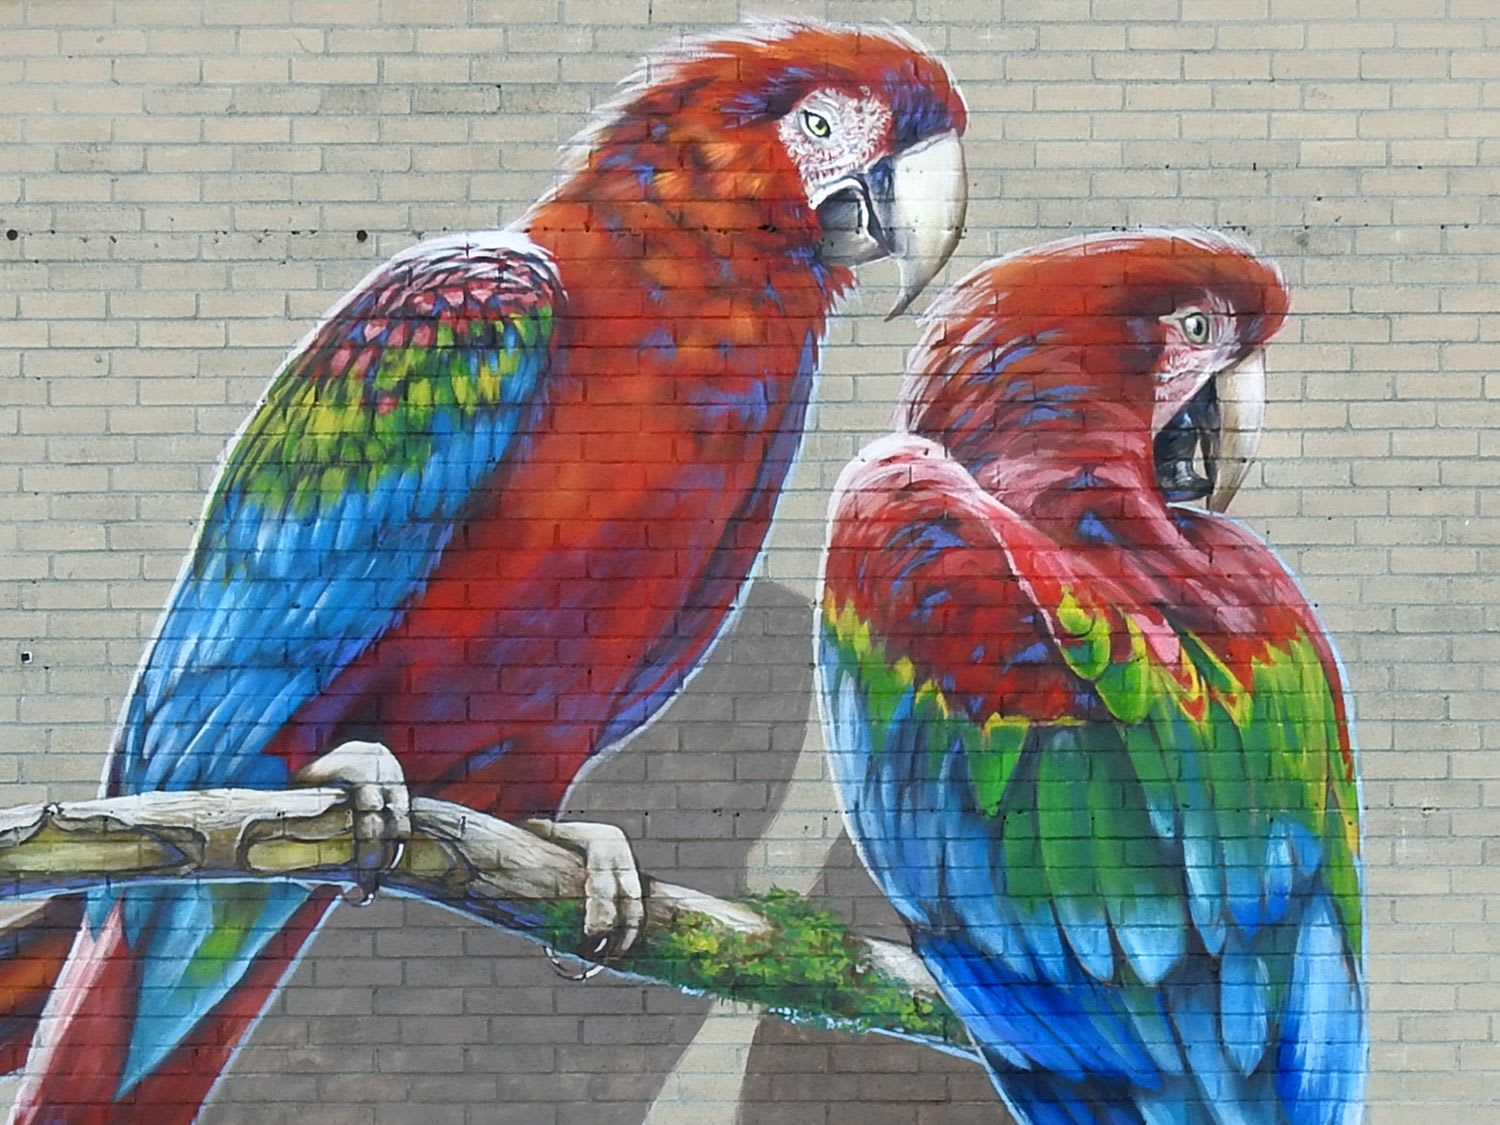 Street Murals by Anat Ronen seen at Spring Branch - The Zocalo murals